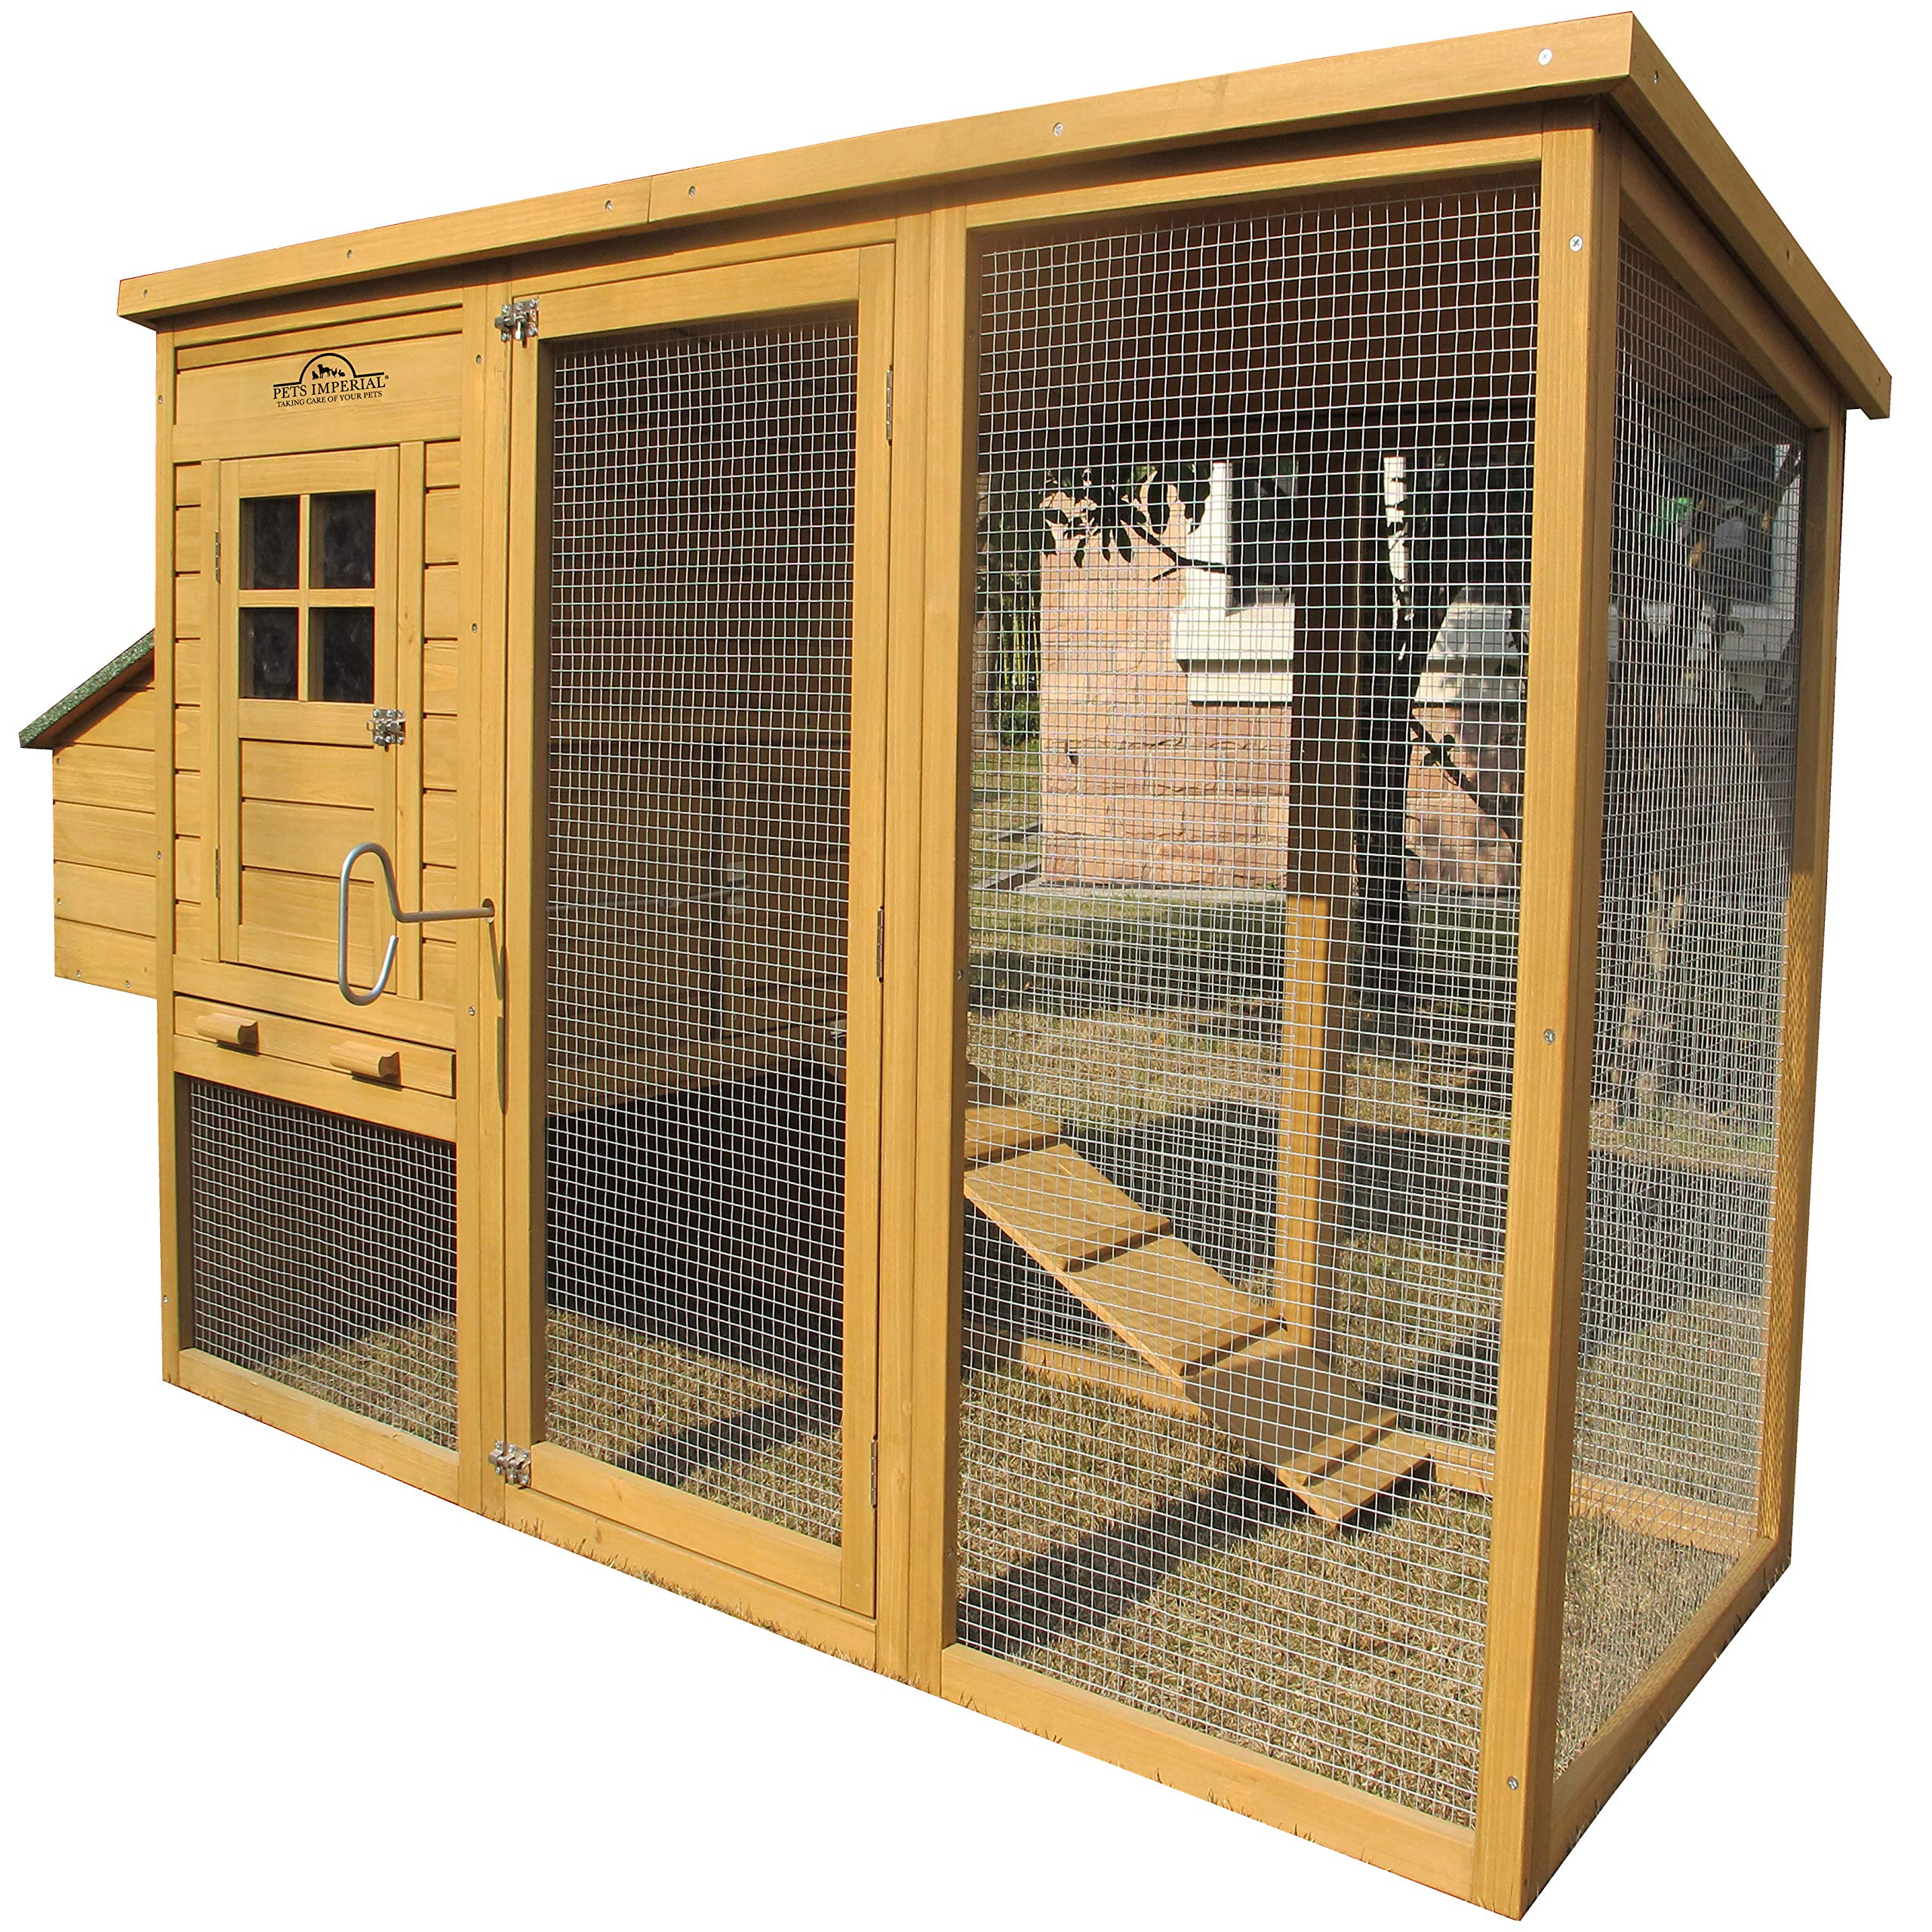 Pets Imperial Monmouth Large Chicken Coop 6ft 7'' in Length with Roof That Opens Suitable for Up to 4 Birds by Pets Imperial